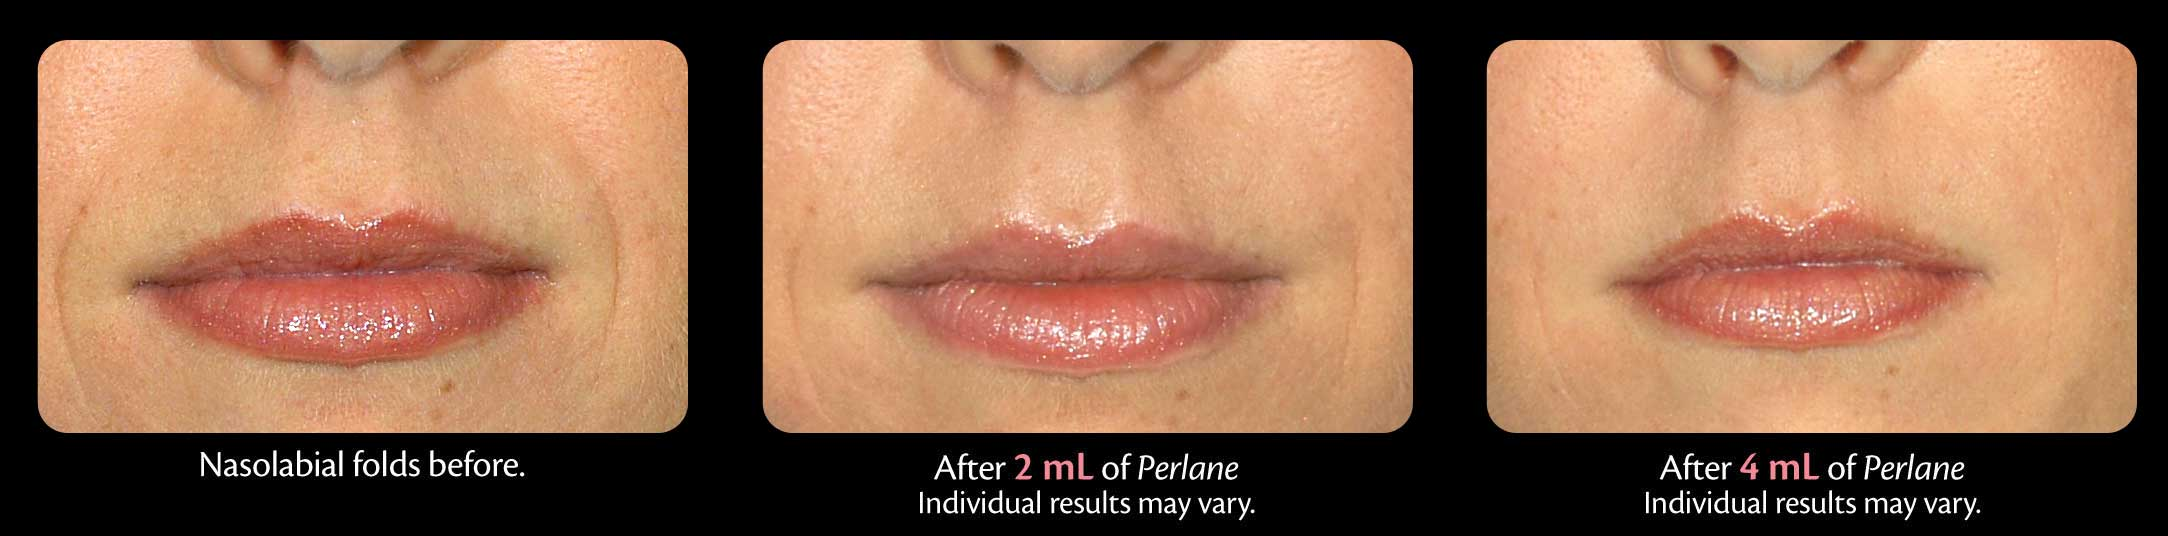 Perlane medical skin products at Florida Aesthetics and Medical Weight Loss in Brandon, Fl